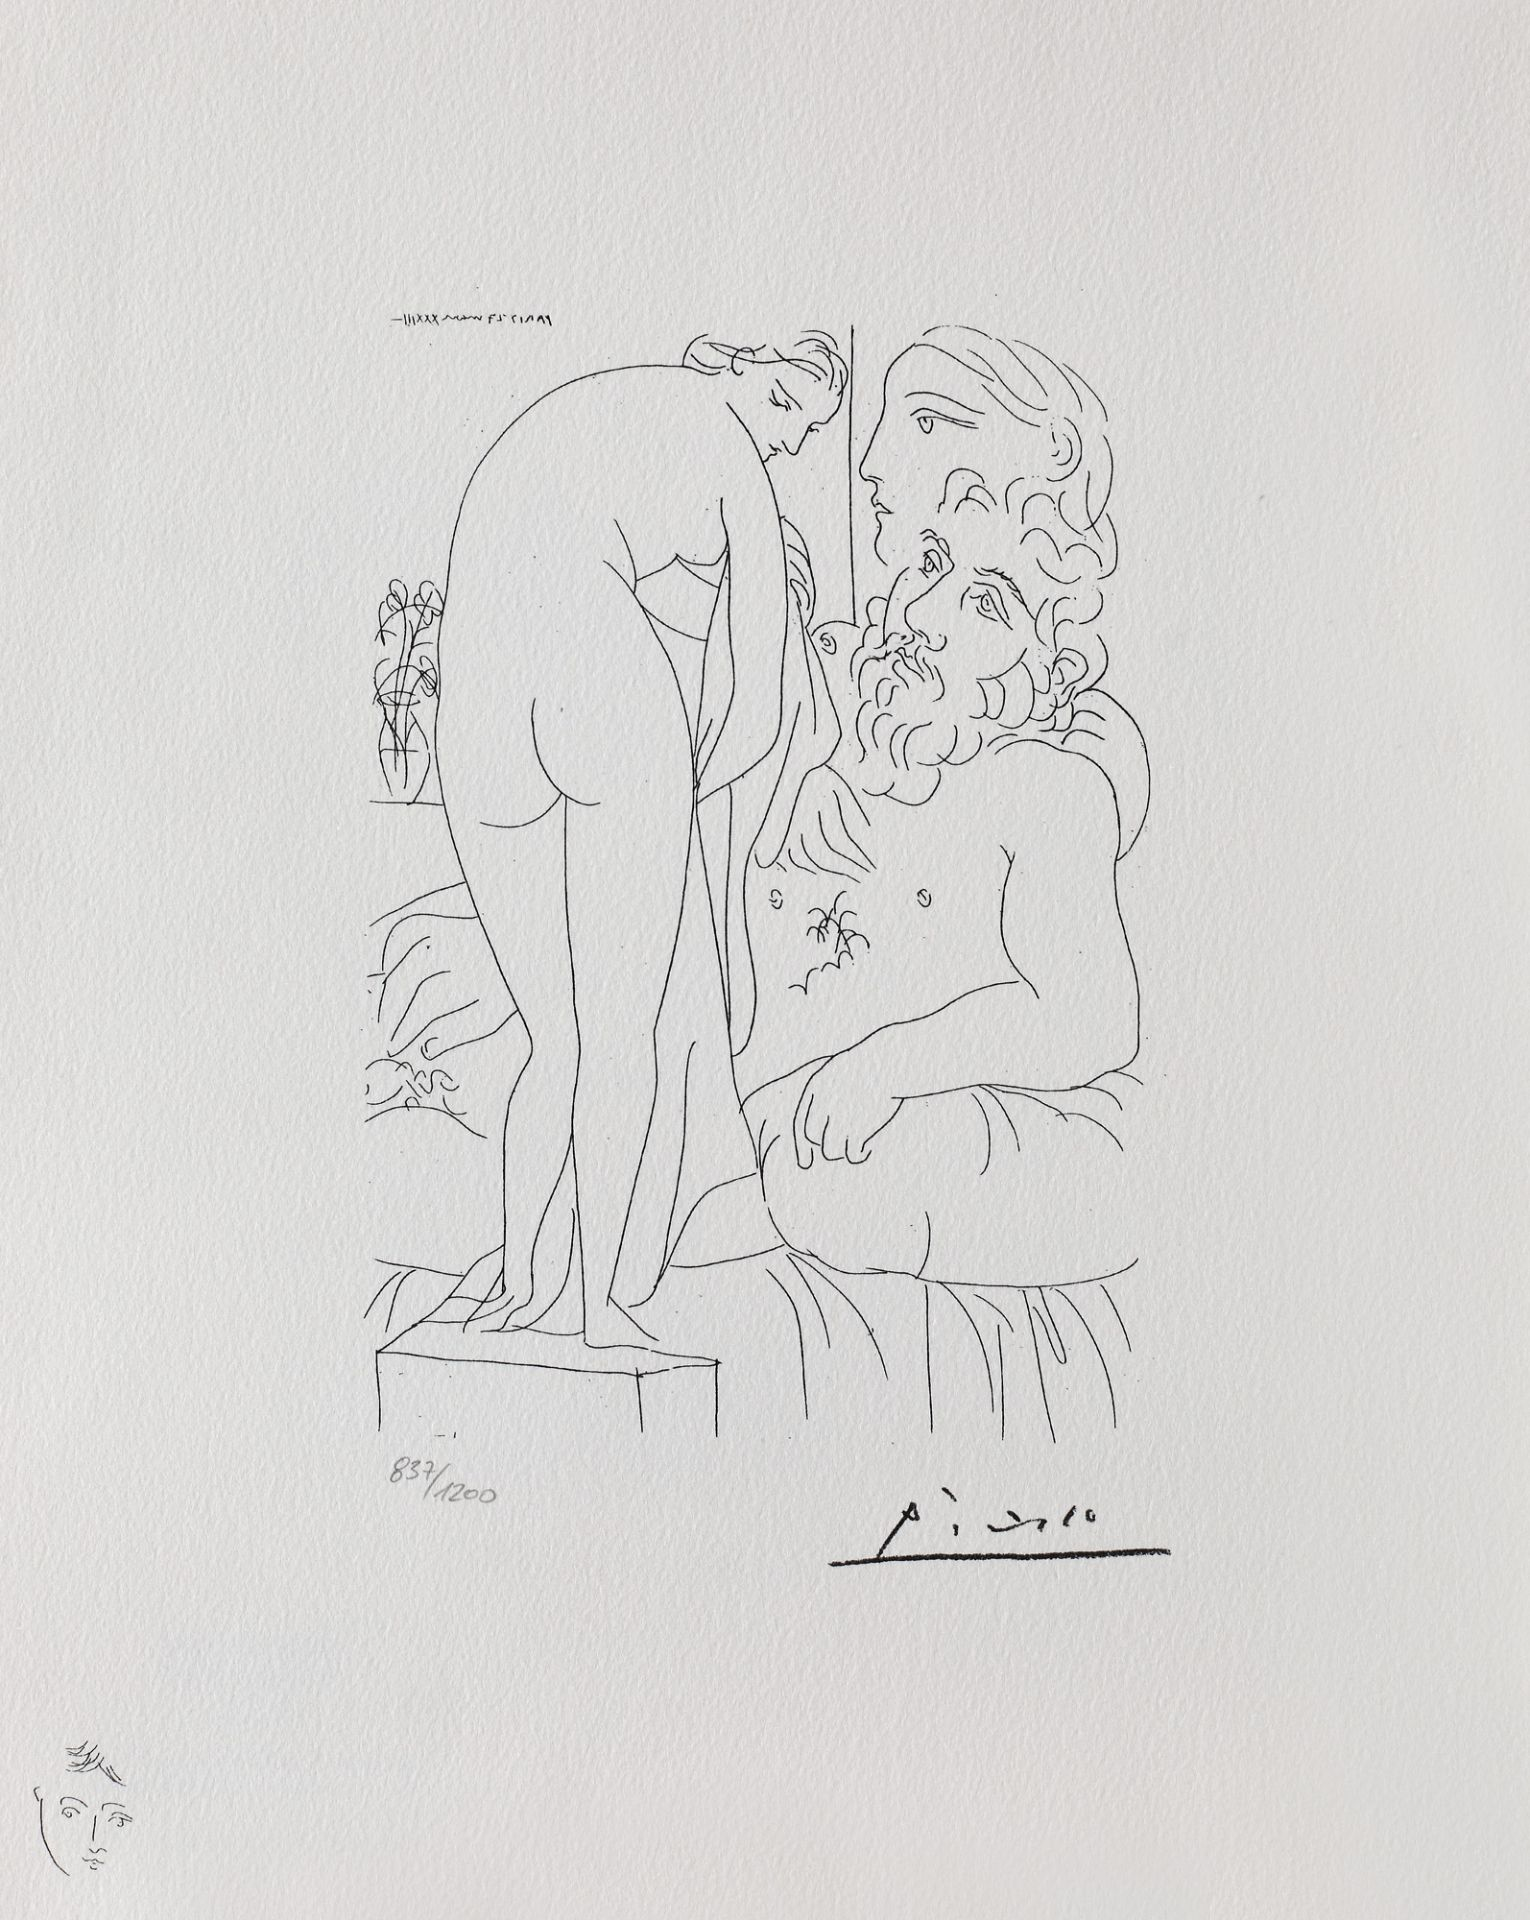 Pablo Picasso, The Artist's MusePablo Picasso, The Artist's Muse, lithography, 22 × 15 cm, sig